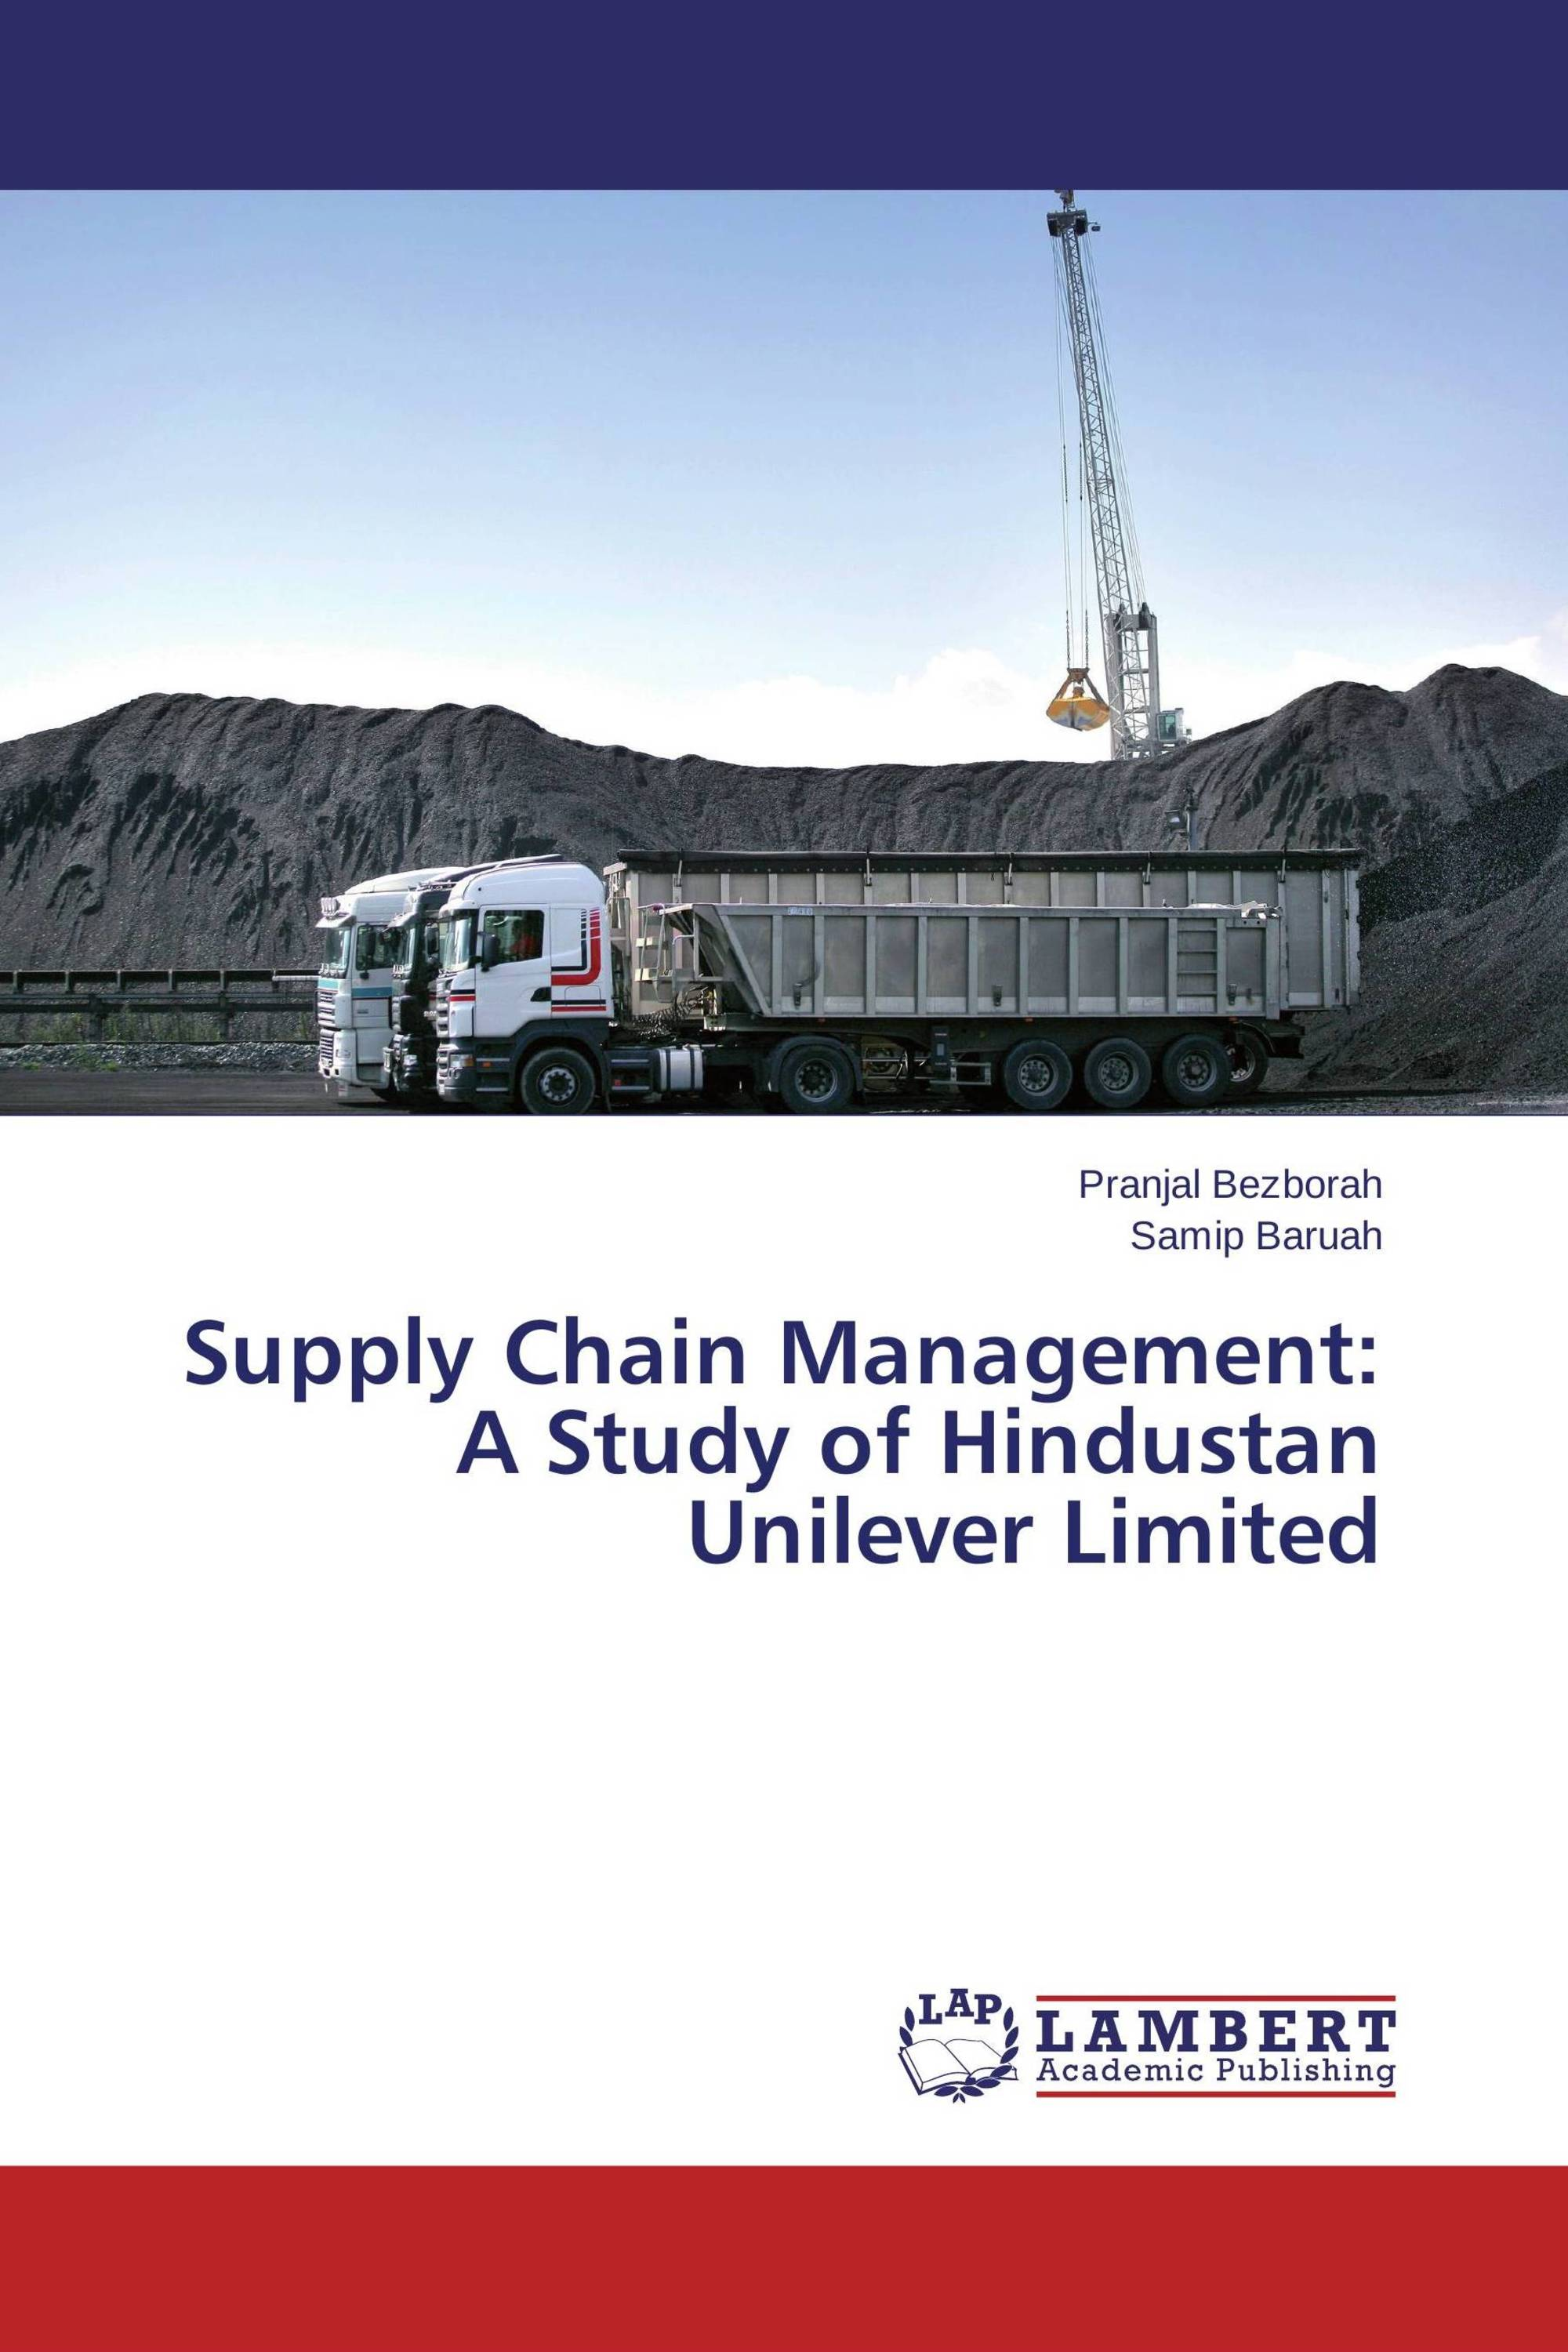 study of supply chain management of hindustan unilever limited Mr pradeep banerjee is executive director - supply chain, director of hindustan unilever limited, since march 01, 2010 he joined the company as a management trainee in 1980.